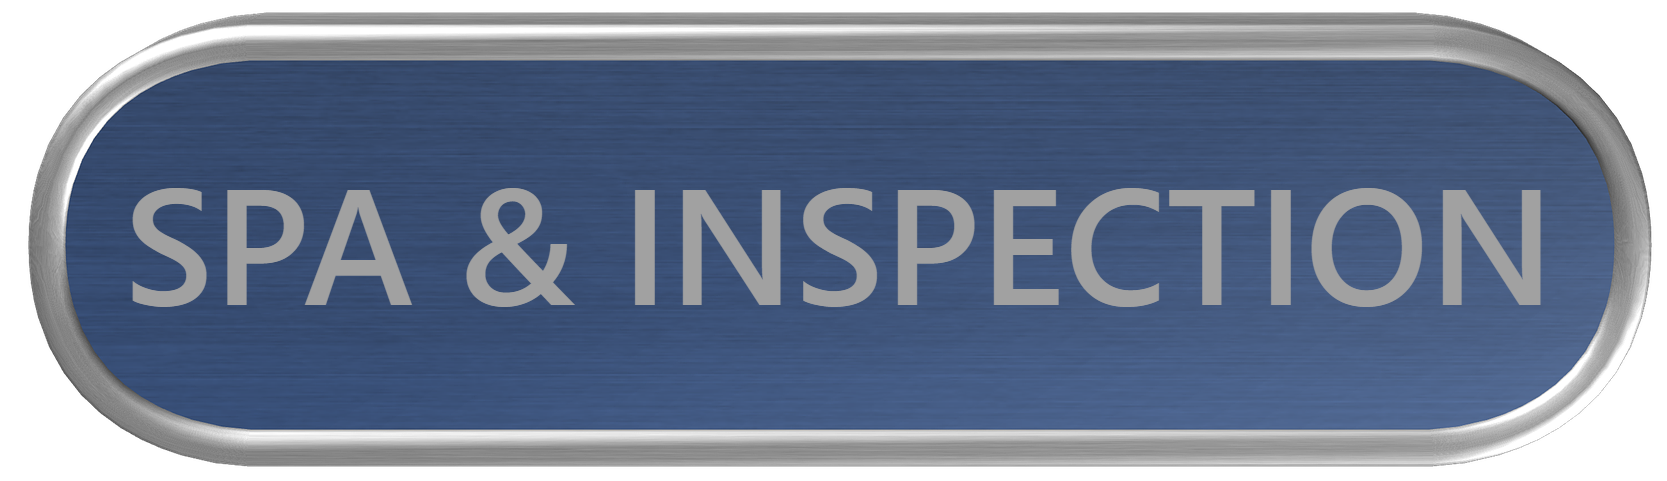 Spa & Inspection Blue